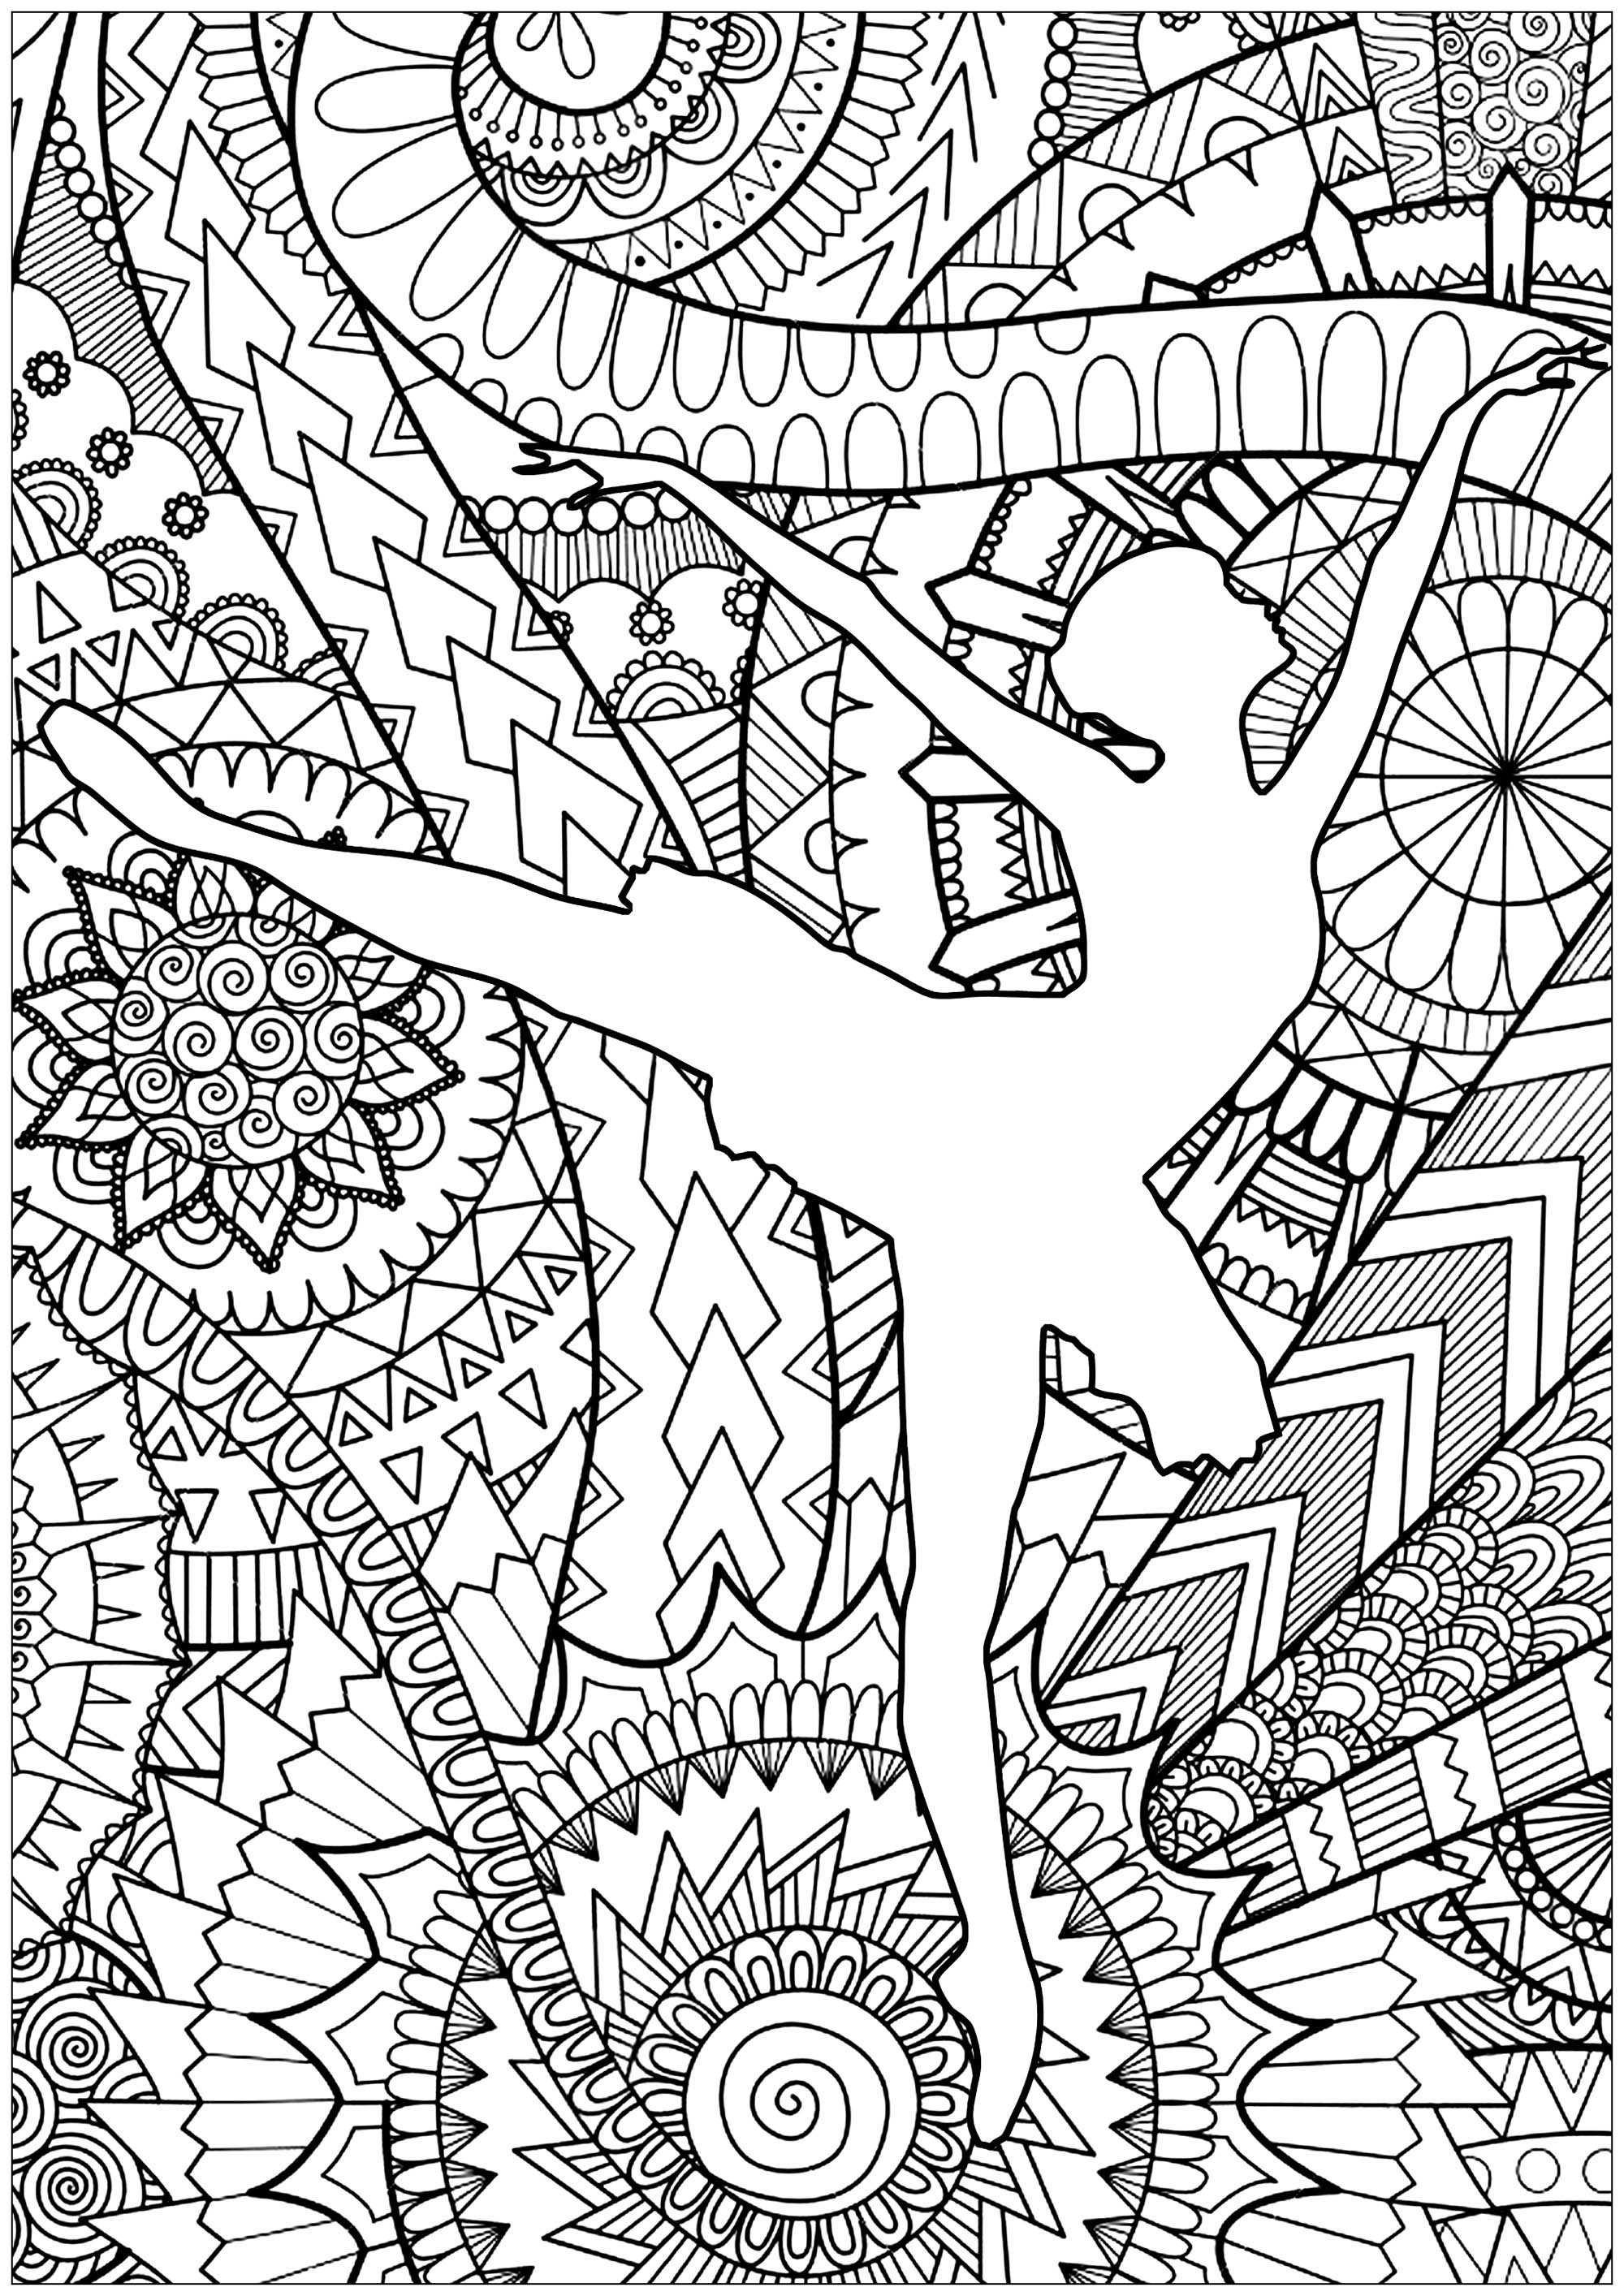 Ballet Dancer Anti Stress Adult Coloring Pages